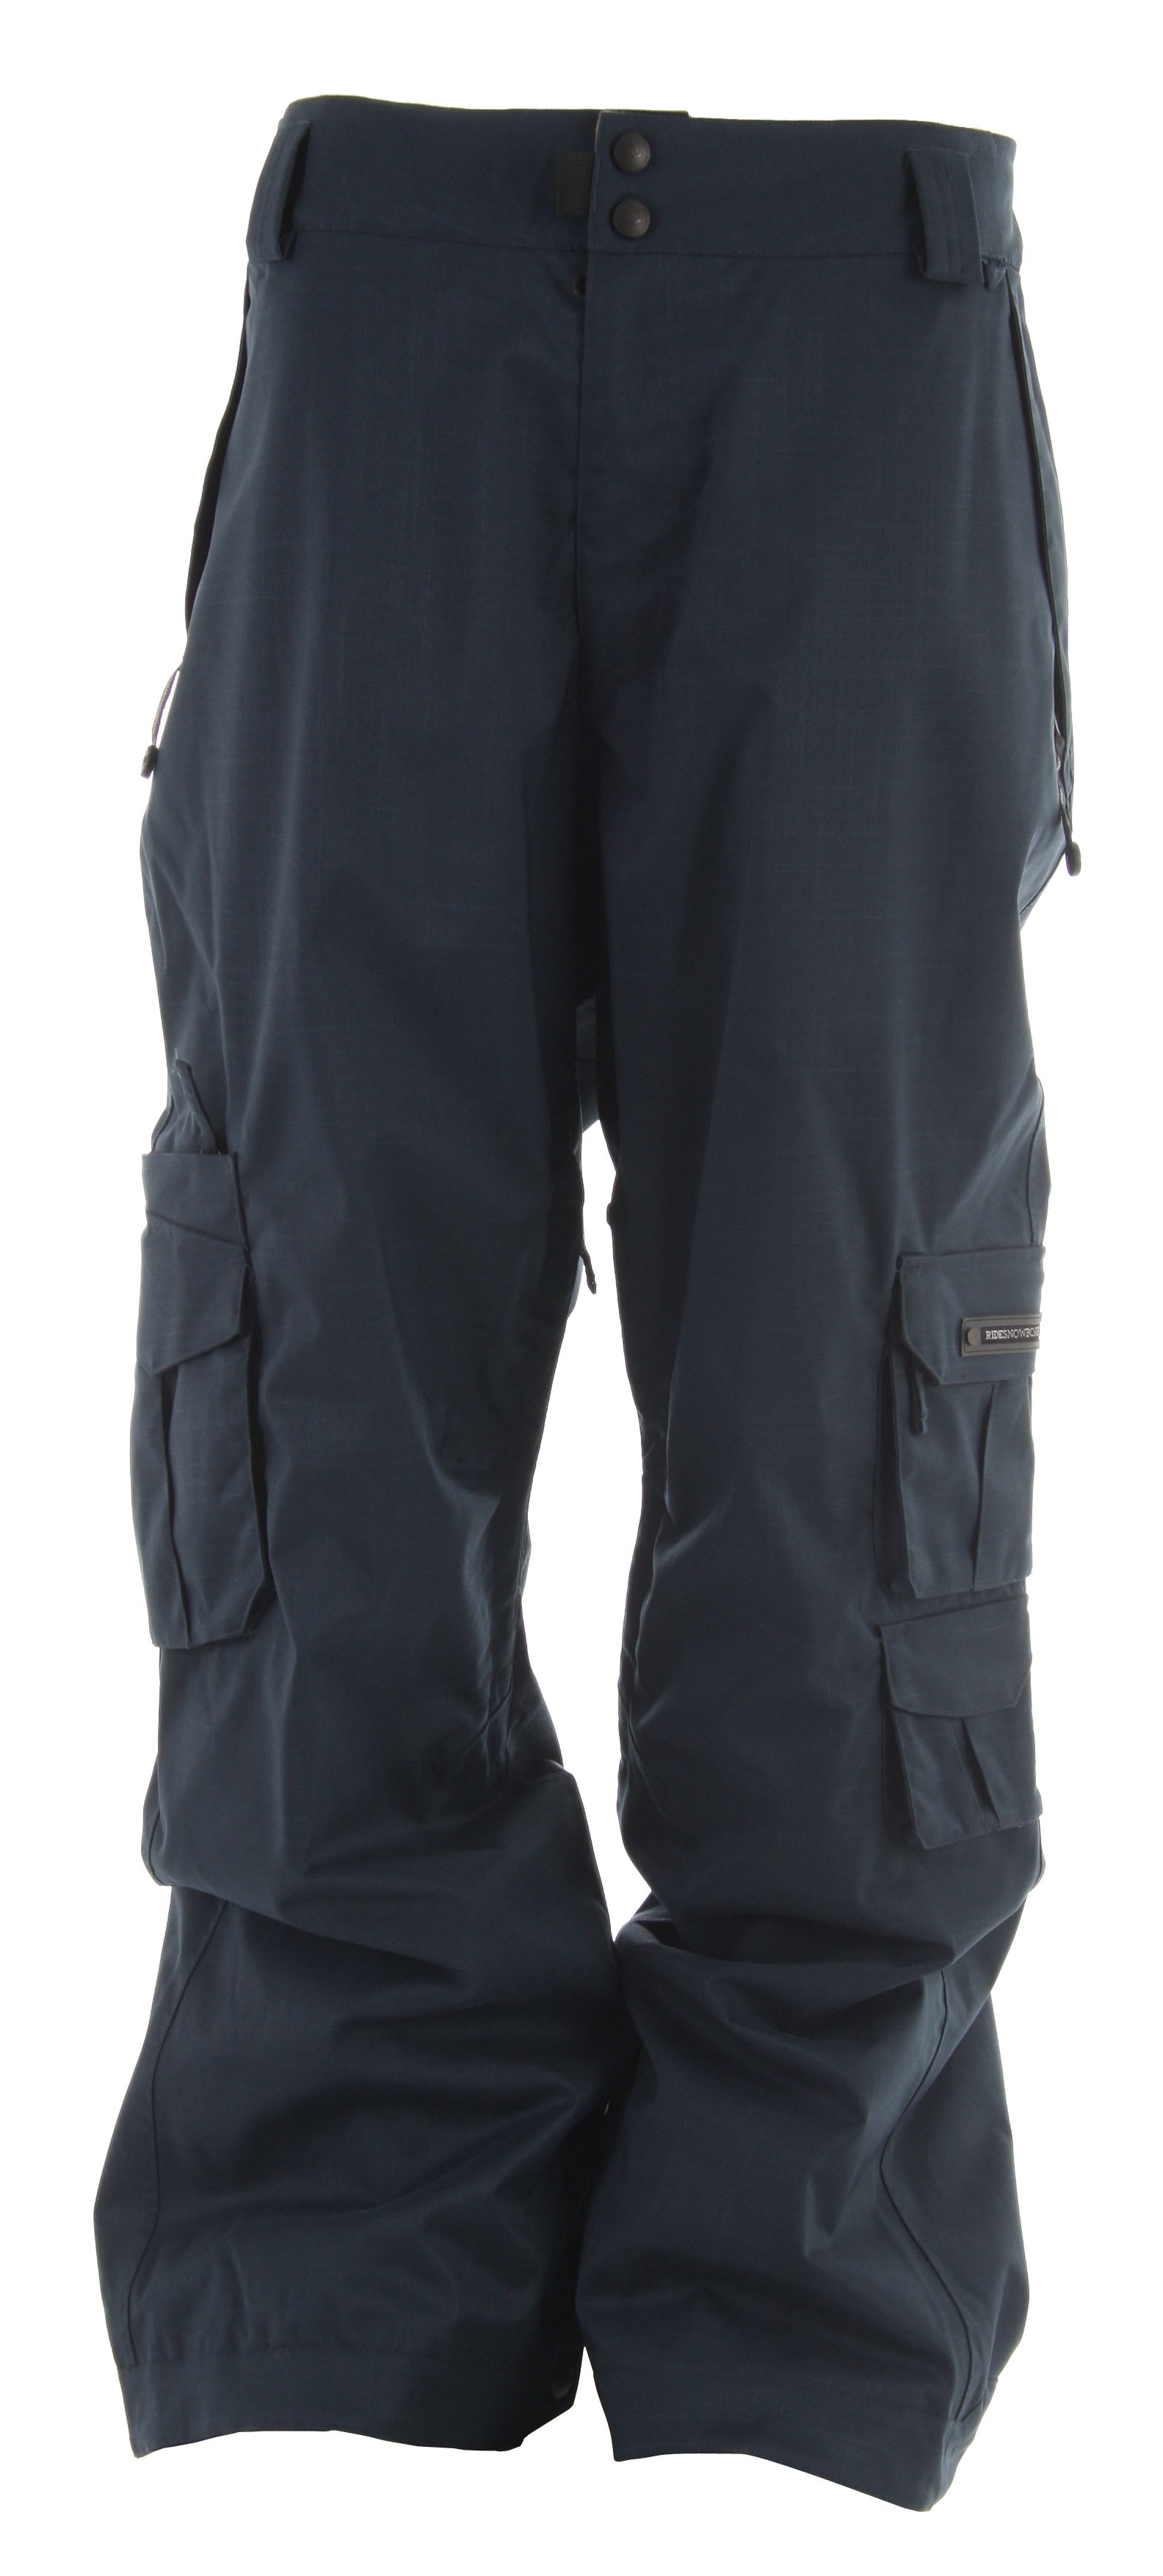 Shop for Ride Belltown Snowboard Pants Dark Peacock - Men's